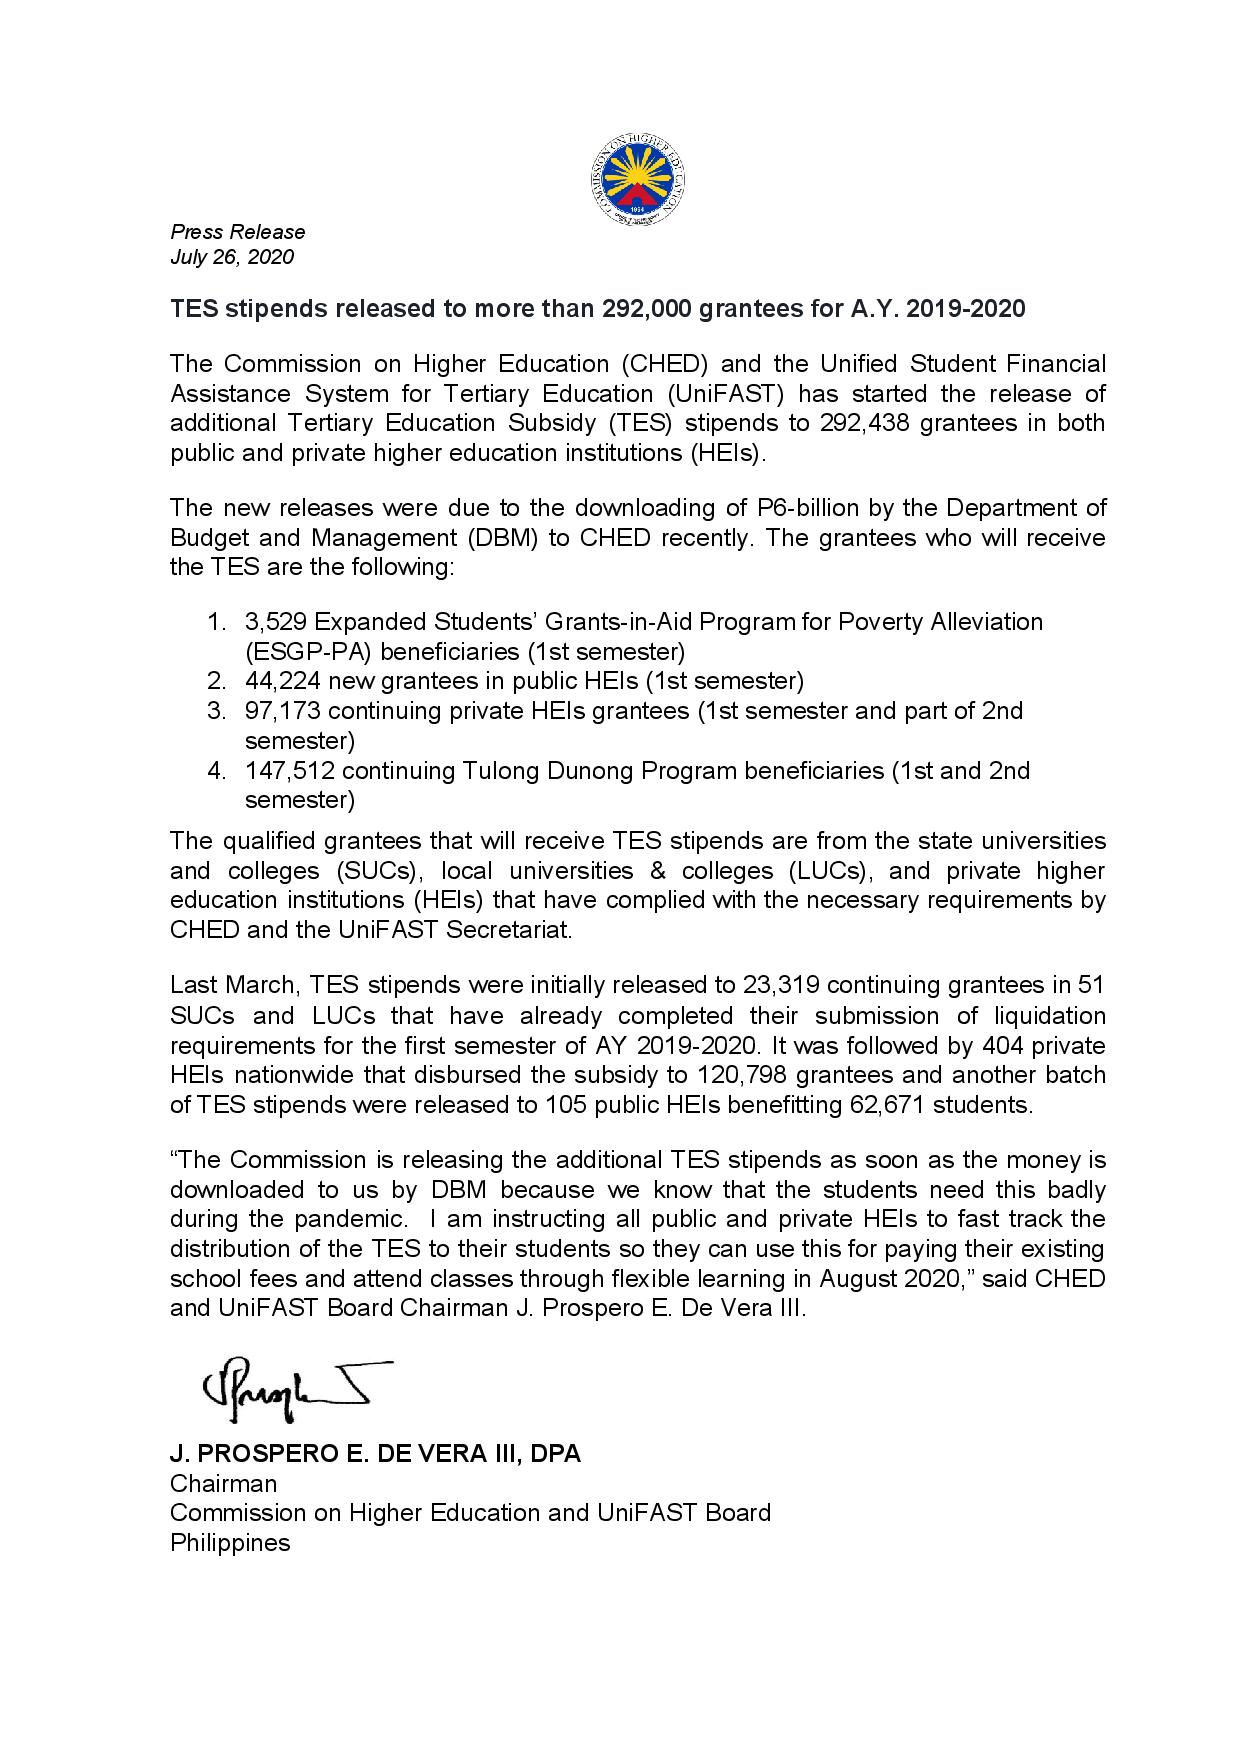 ched-press-release-july-26